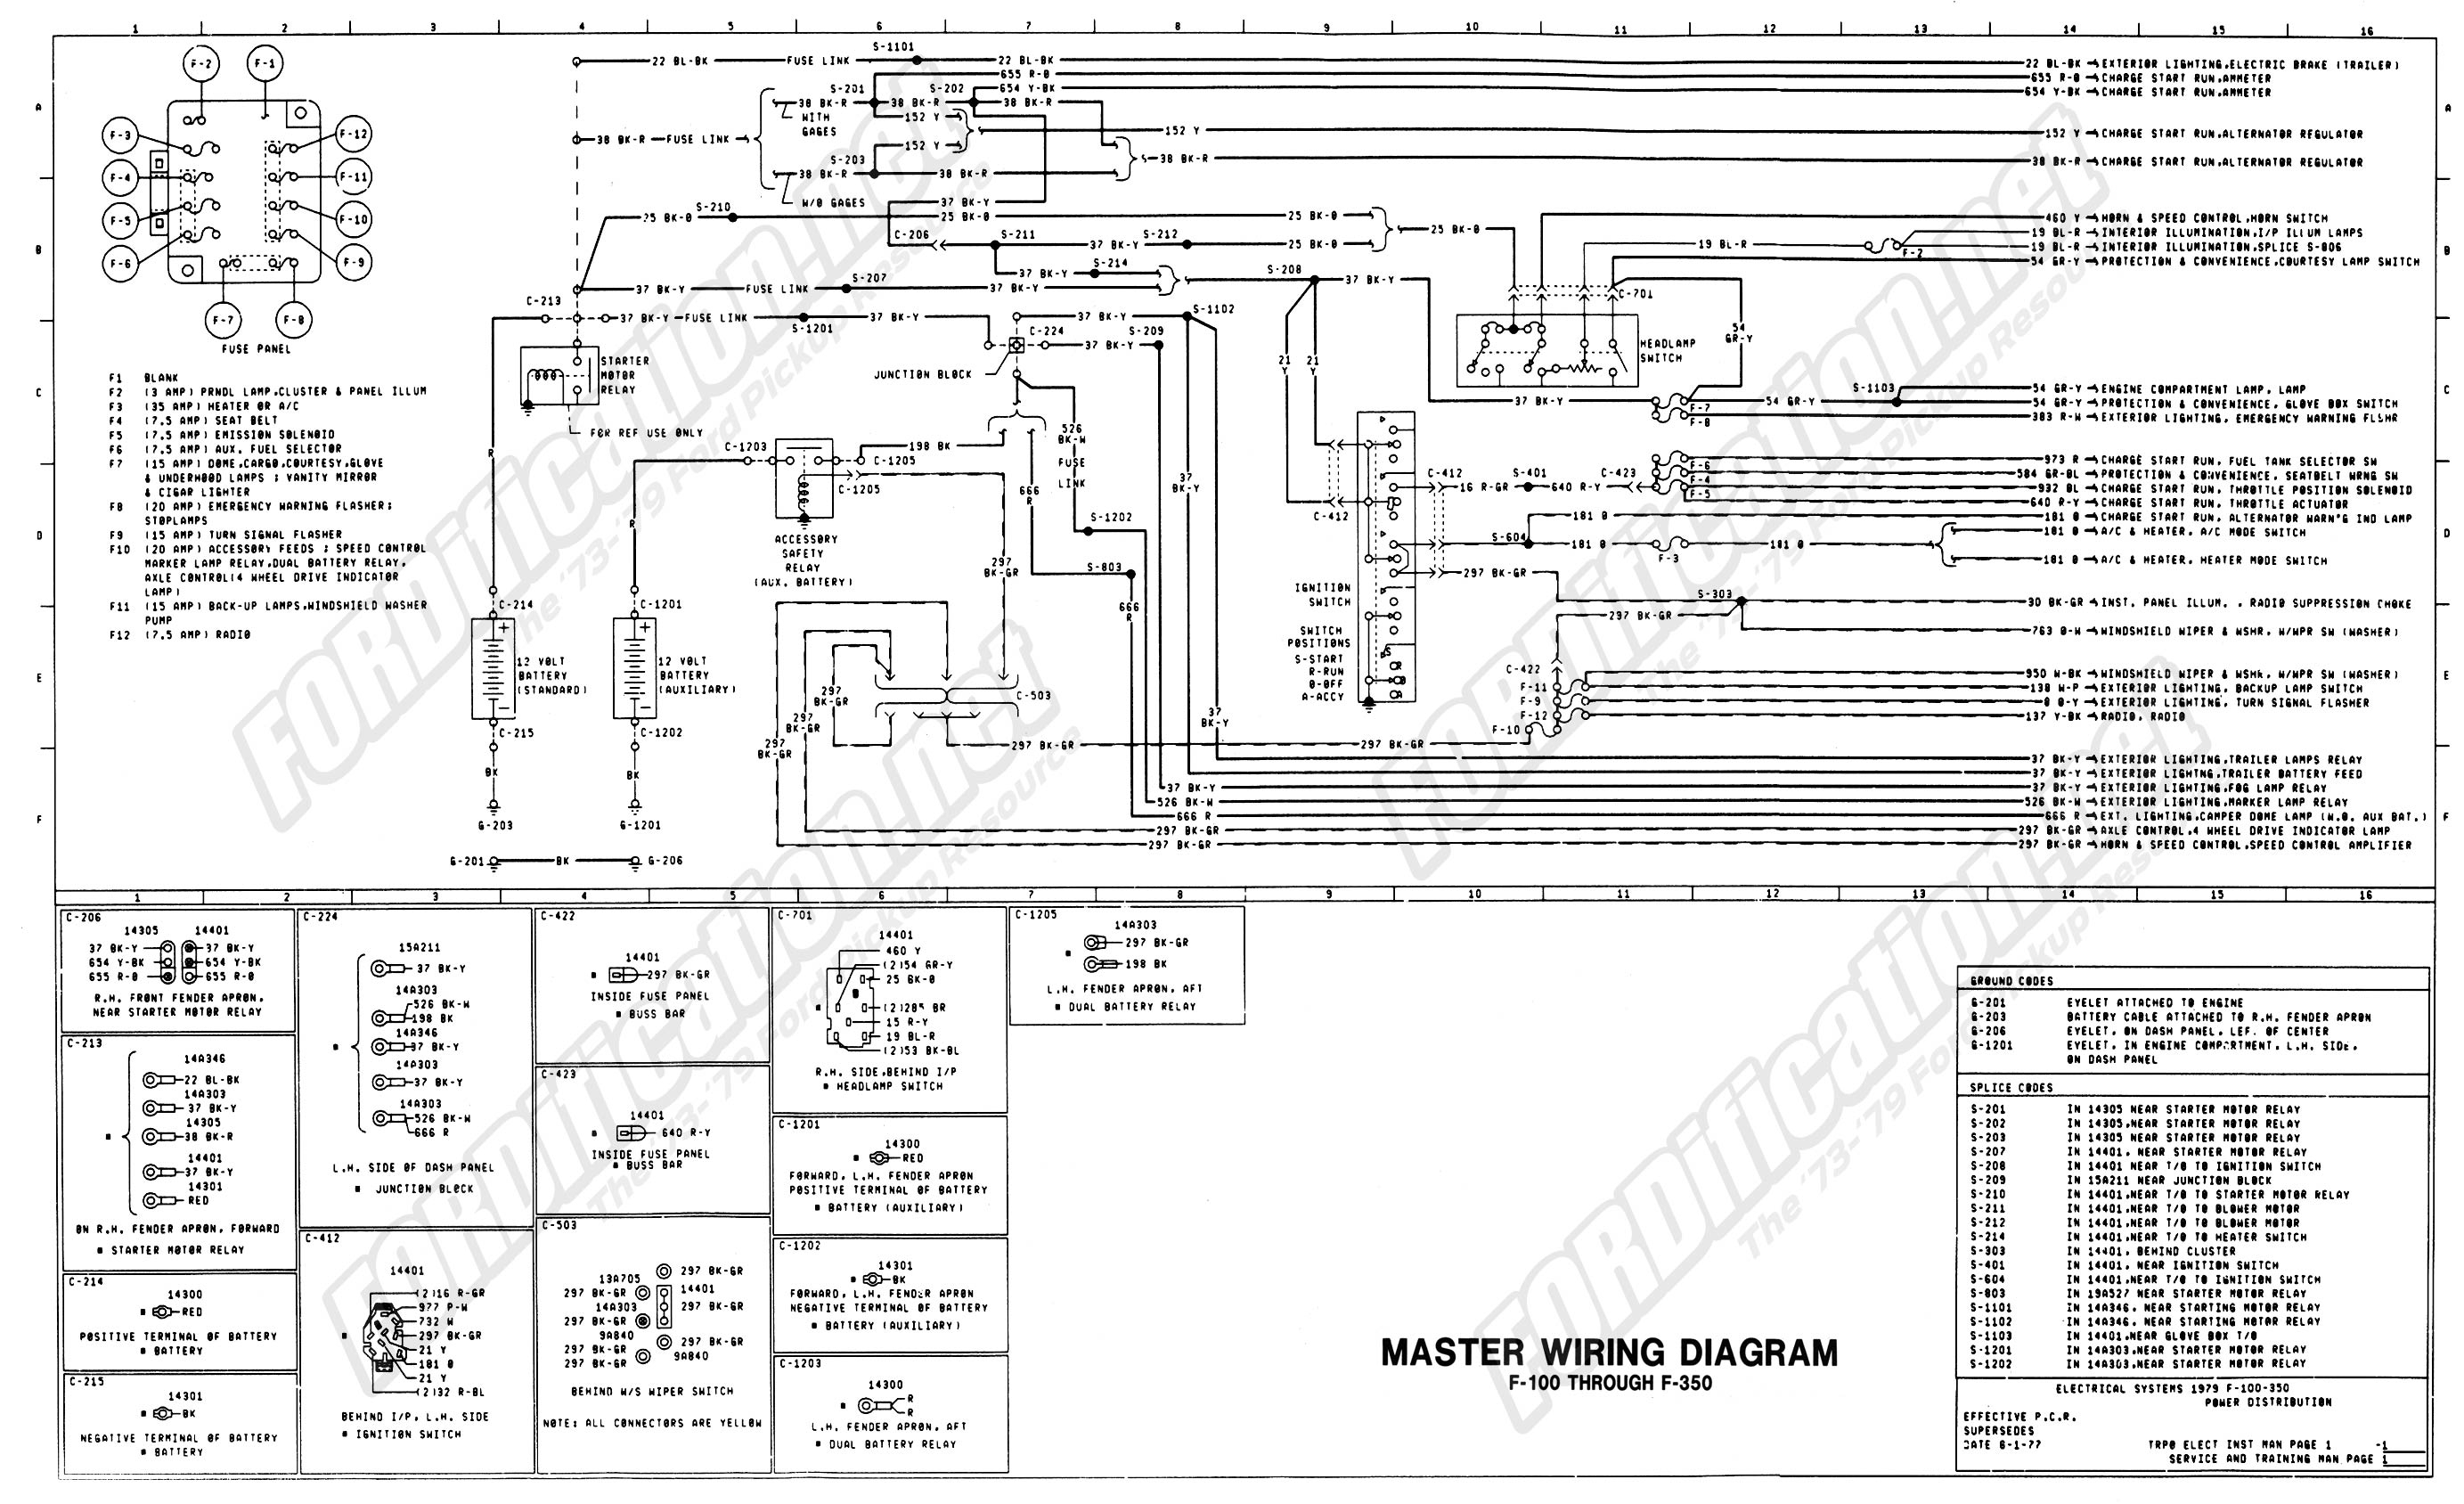 escort power cord wiring diagram - 1999 ford escort battery cable diagram  inspirational wiring diagram 1979